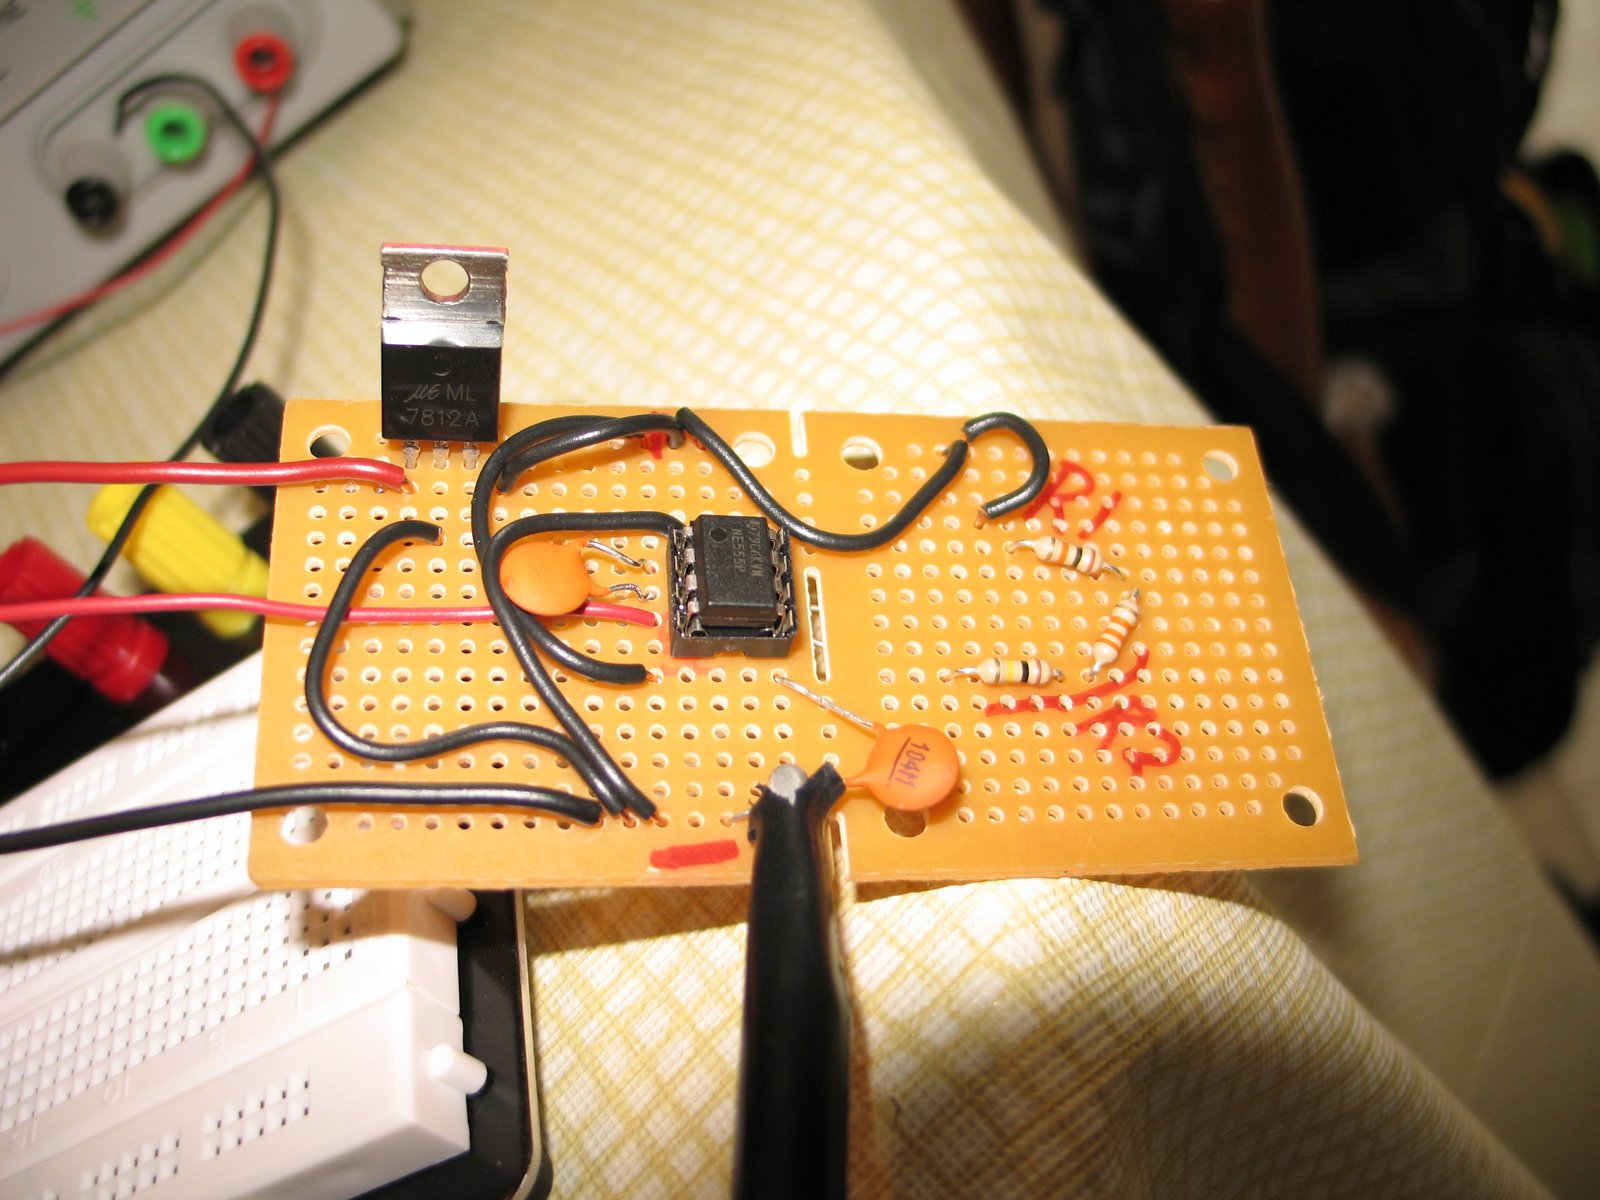 Bryans Site 50hz Square Wave From Astable 555 Oscillator 50 Duty Cycle Circuit Schematic Diagram My Weekend Project Create A That Would Signal To Feed Into The Ecm Pcm On 1990s Caprice Circumvent Vehicle